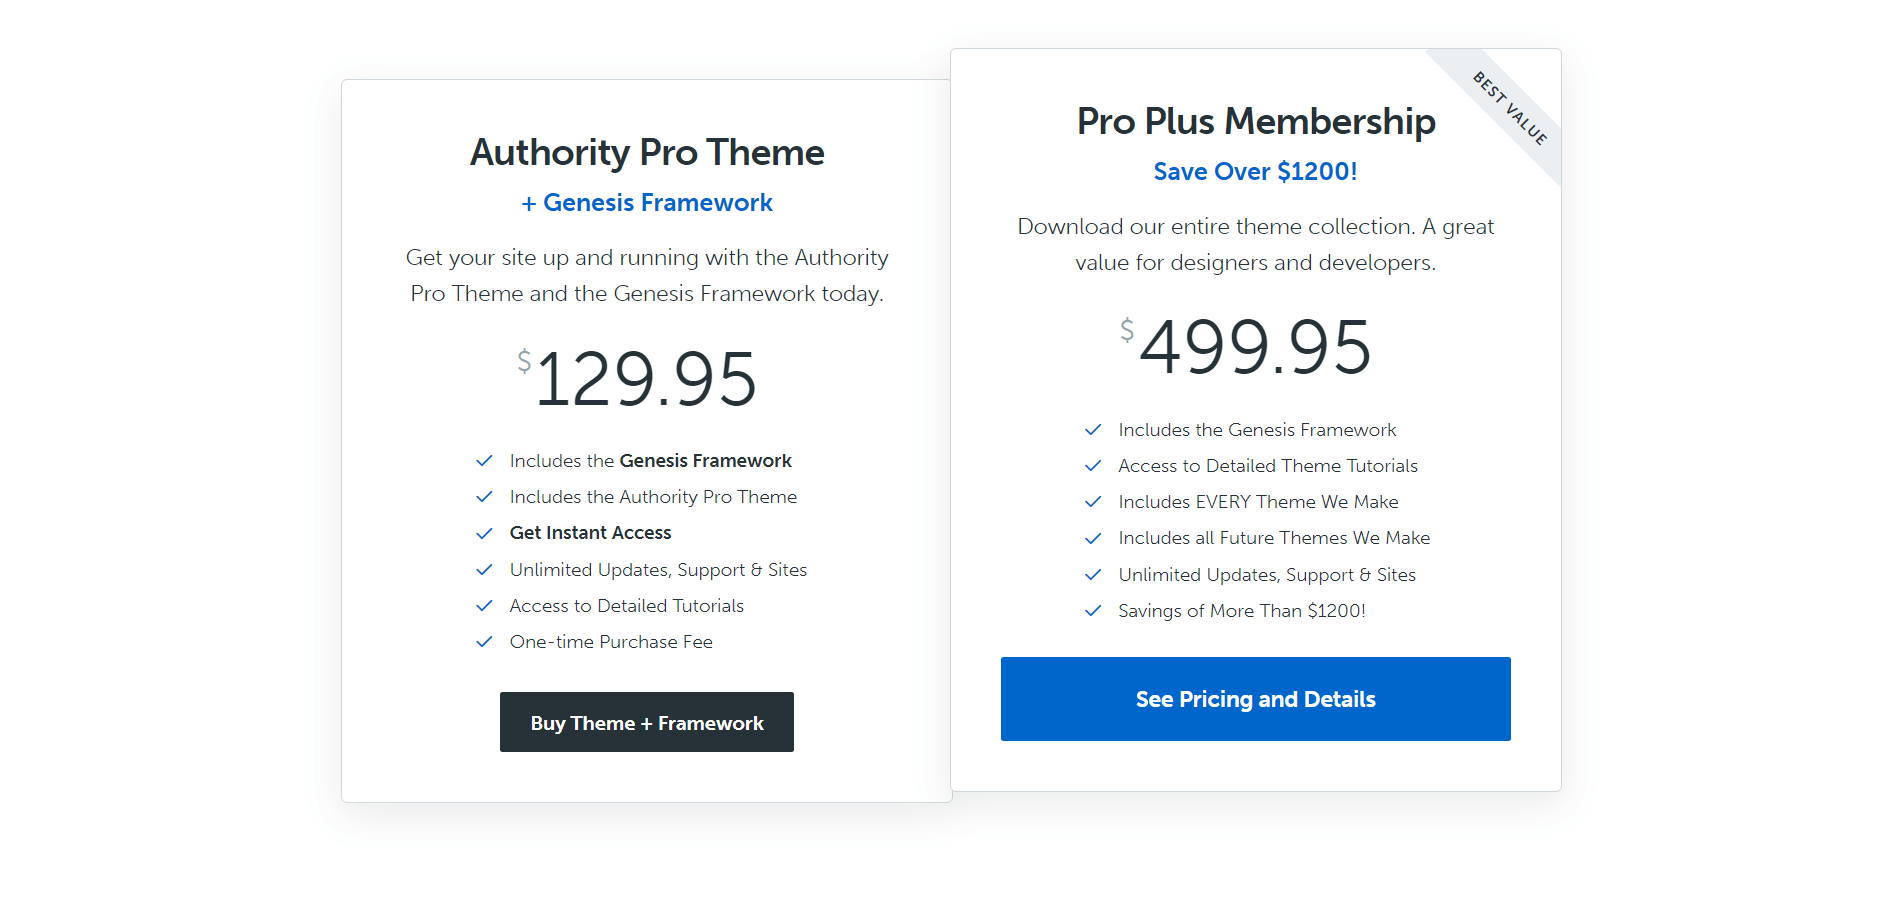 Authority Pro Theme Pricing 2